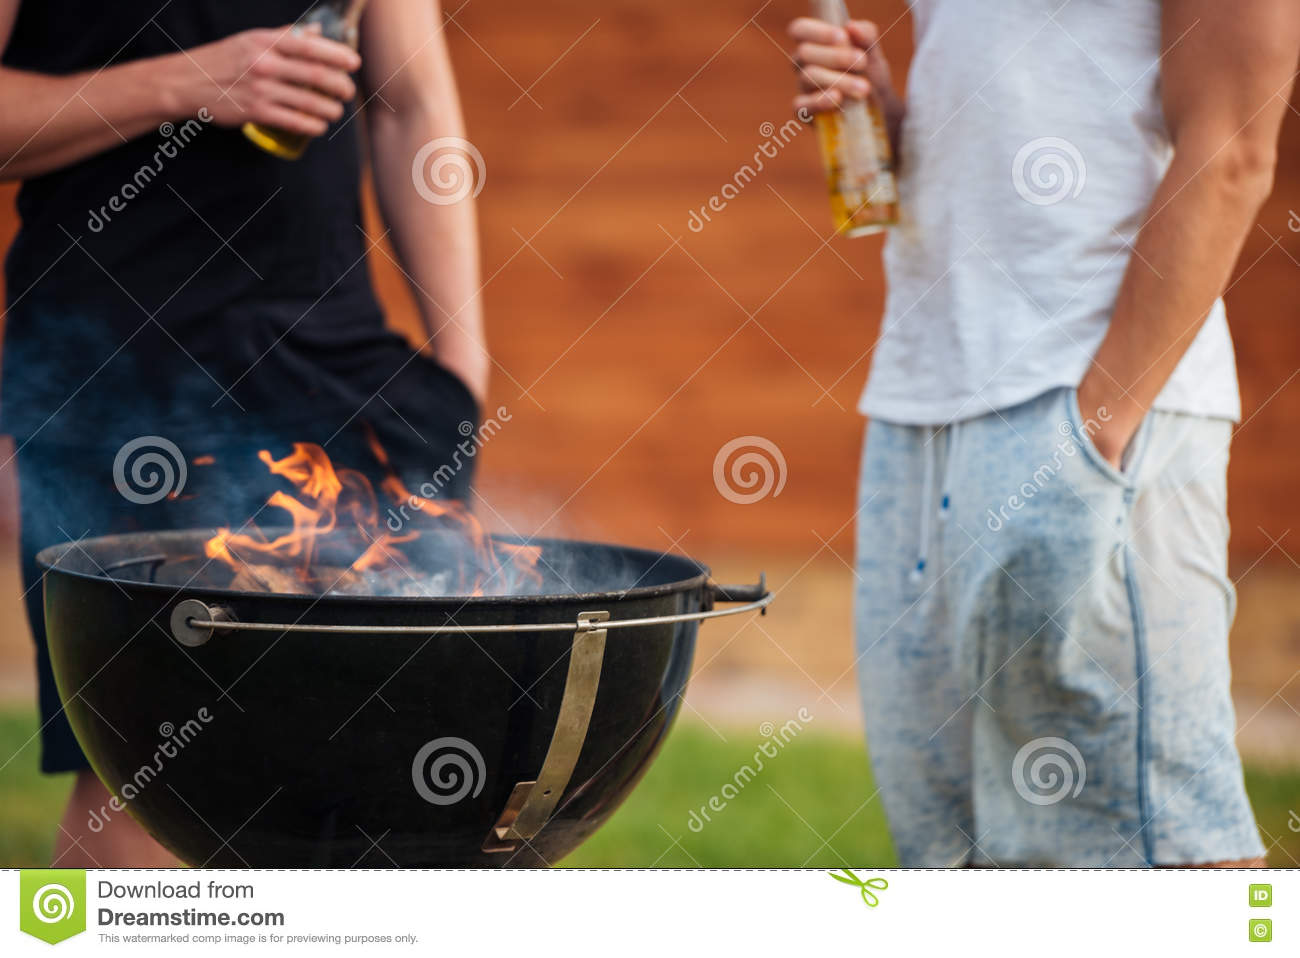 Cropped image of two men holding beer bottles while barbecue